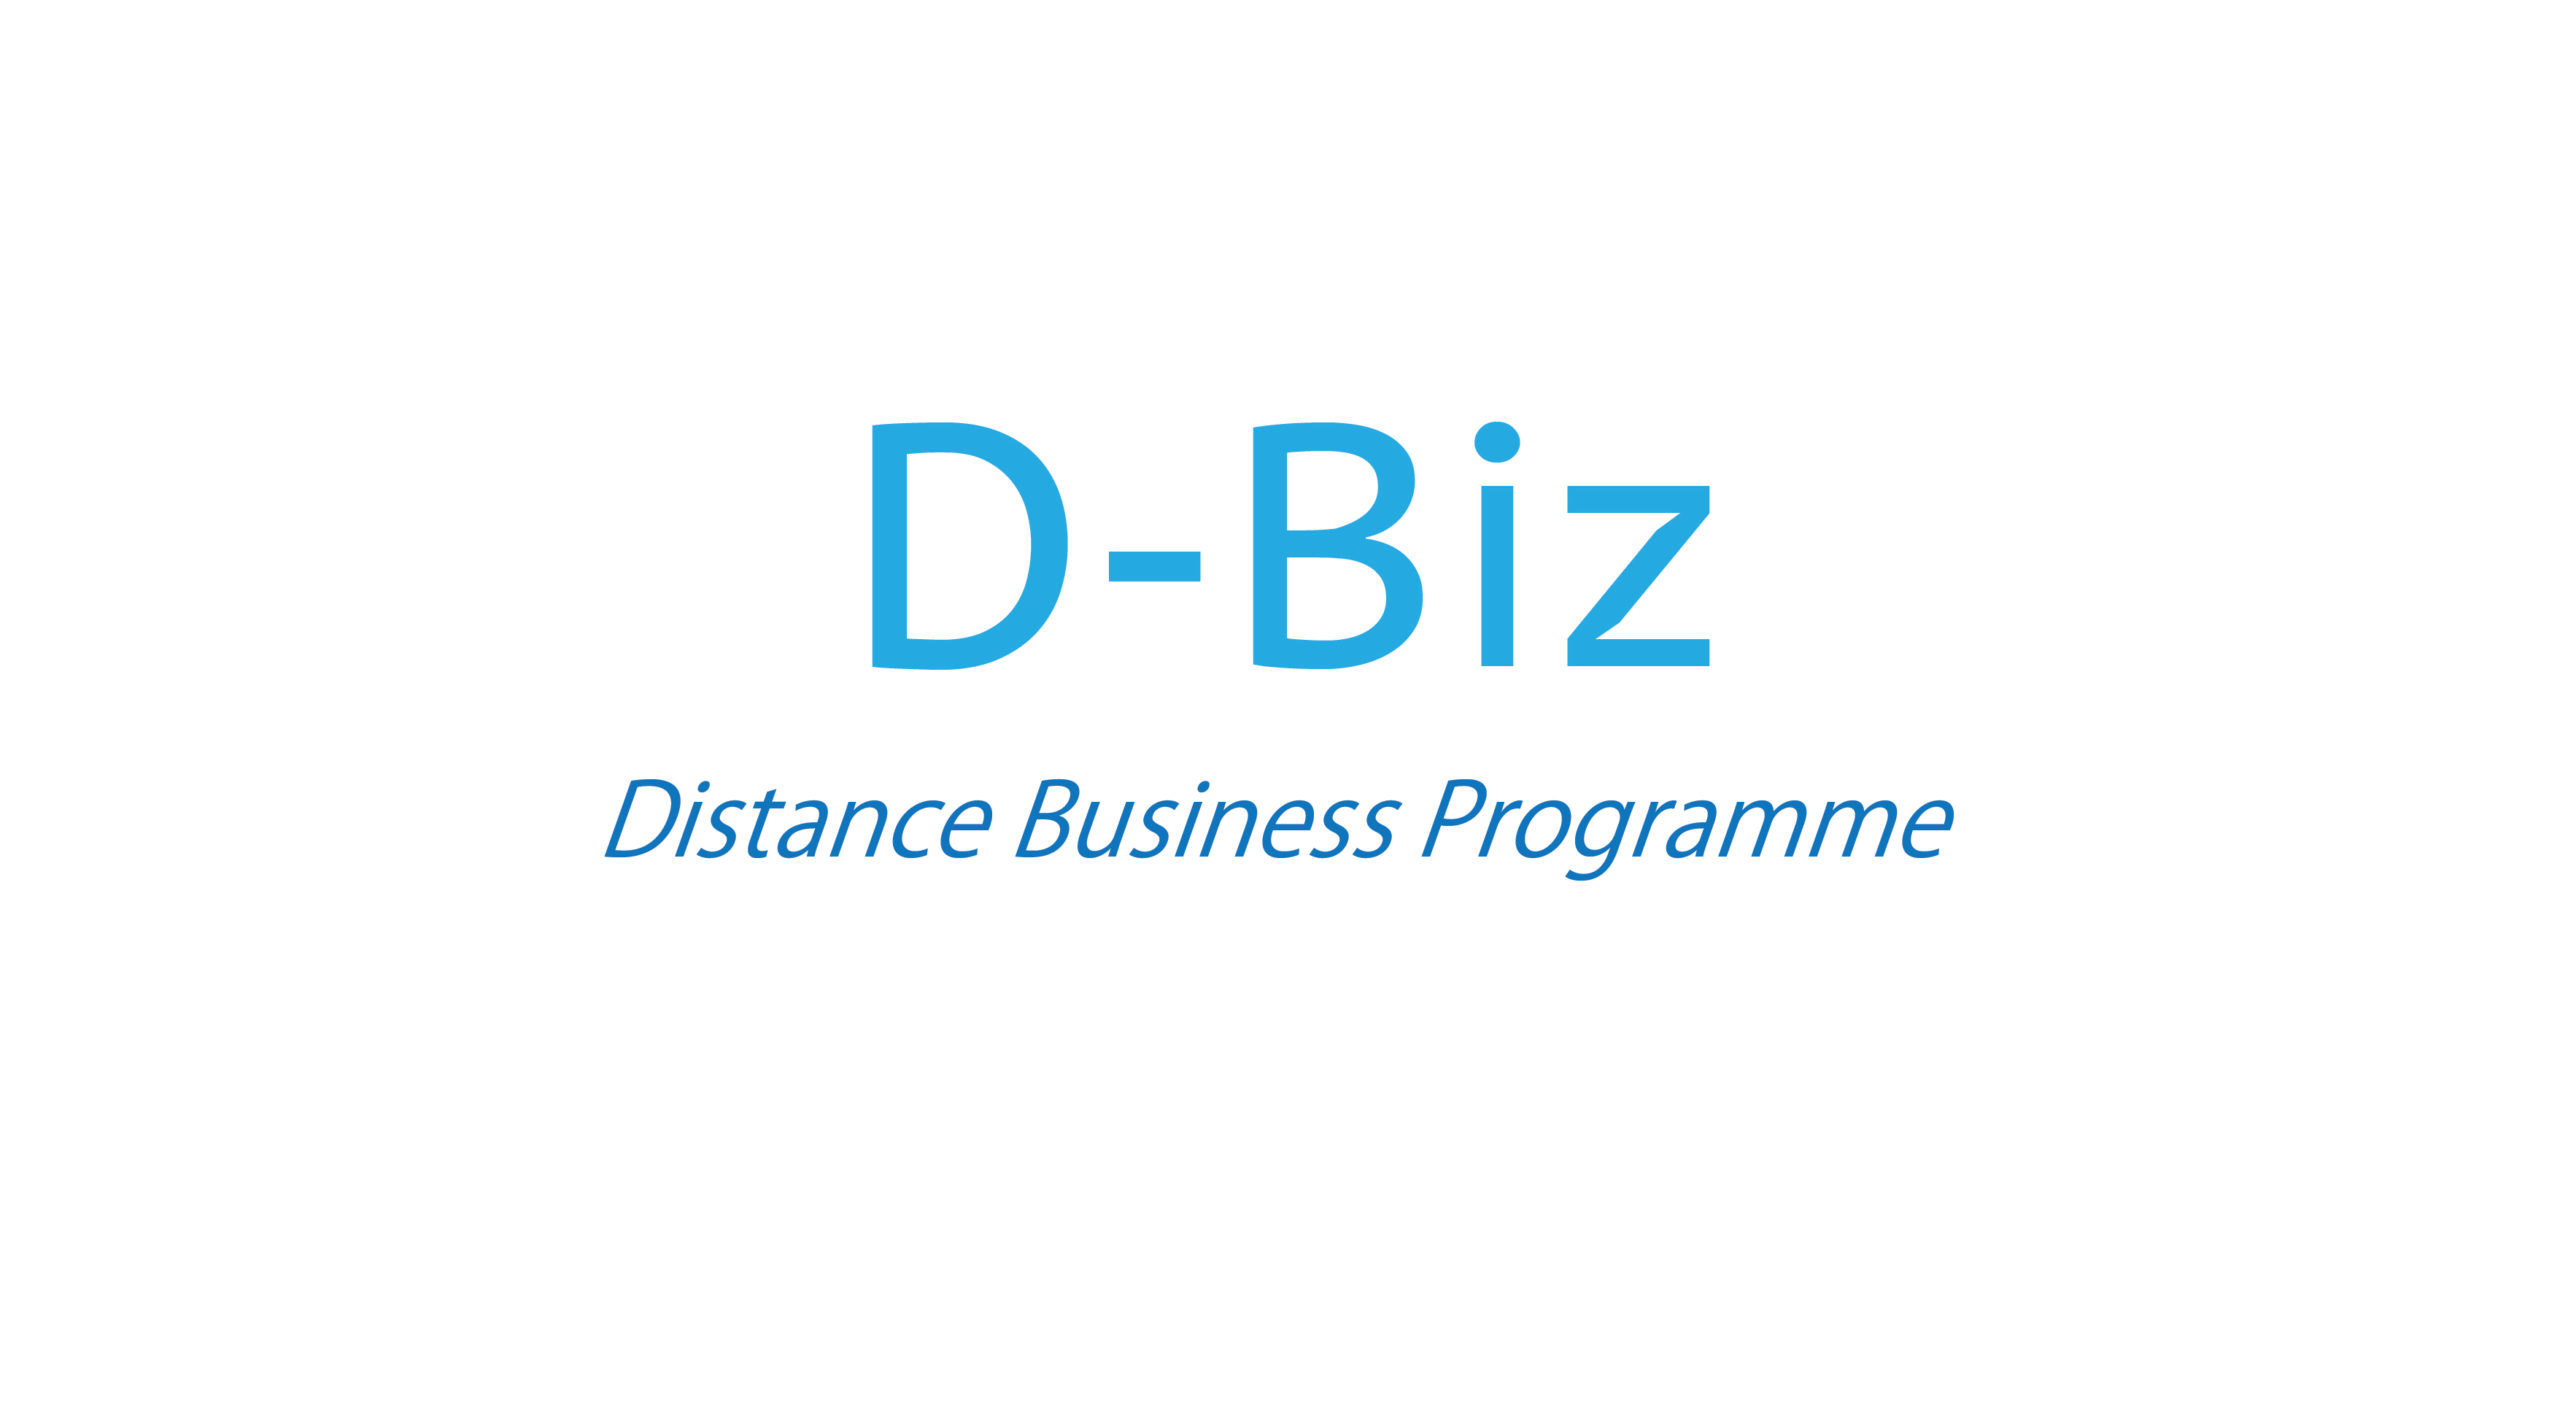 Distance Business Programme IT Service Providers (Ref. No.: SP-738-885)